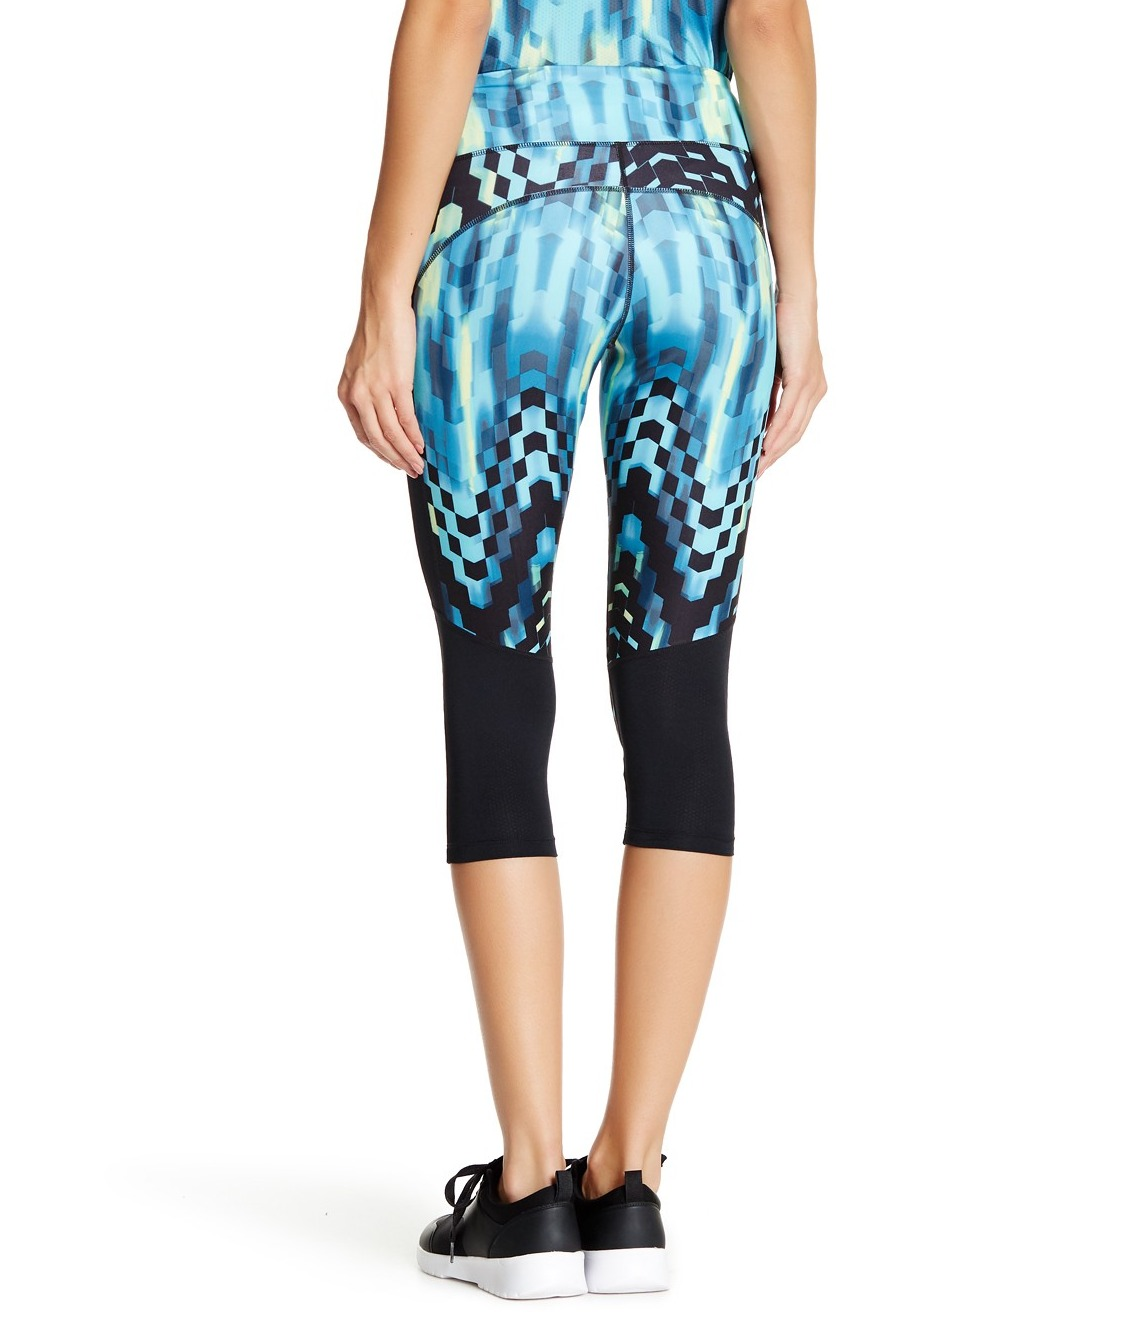 Asics-NEW-Women-039-s-Performance-Workout-Yoga-Capris-Leggings-Pants thumbnail 8